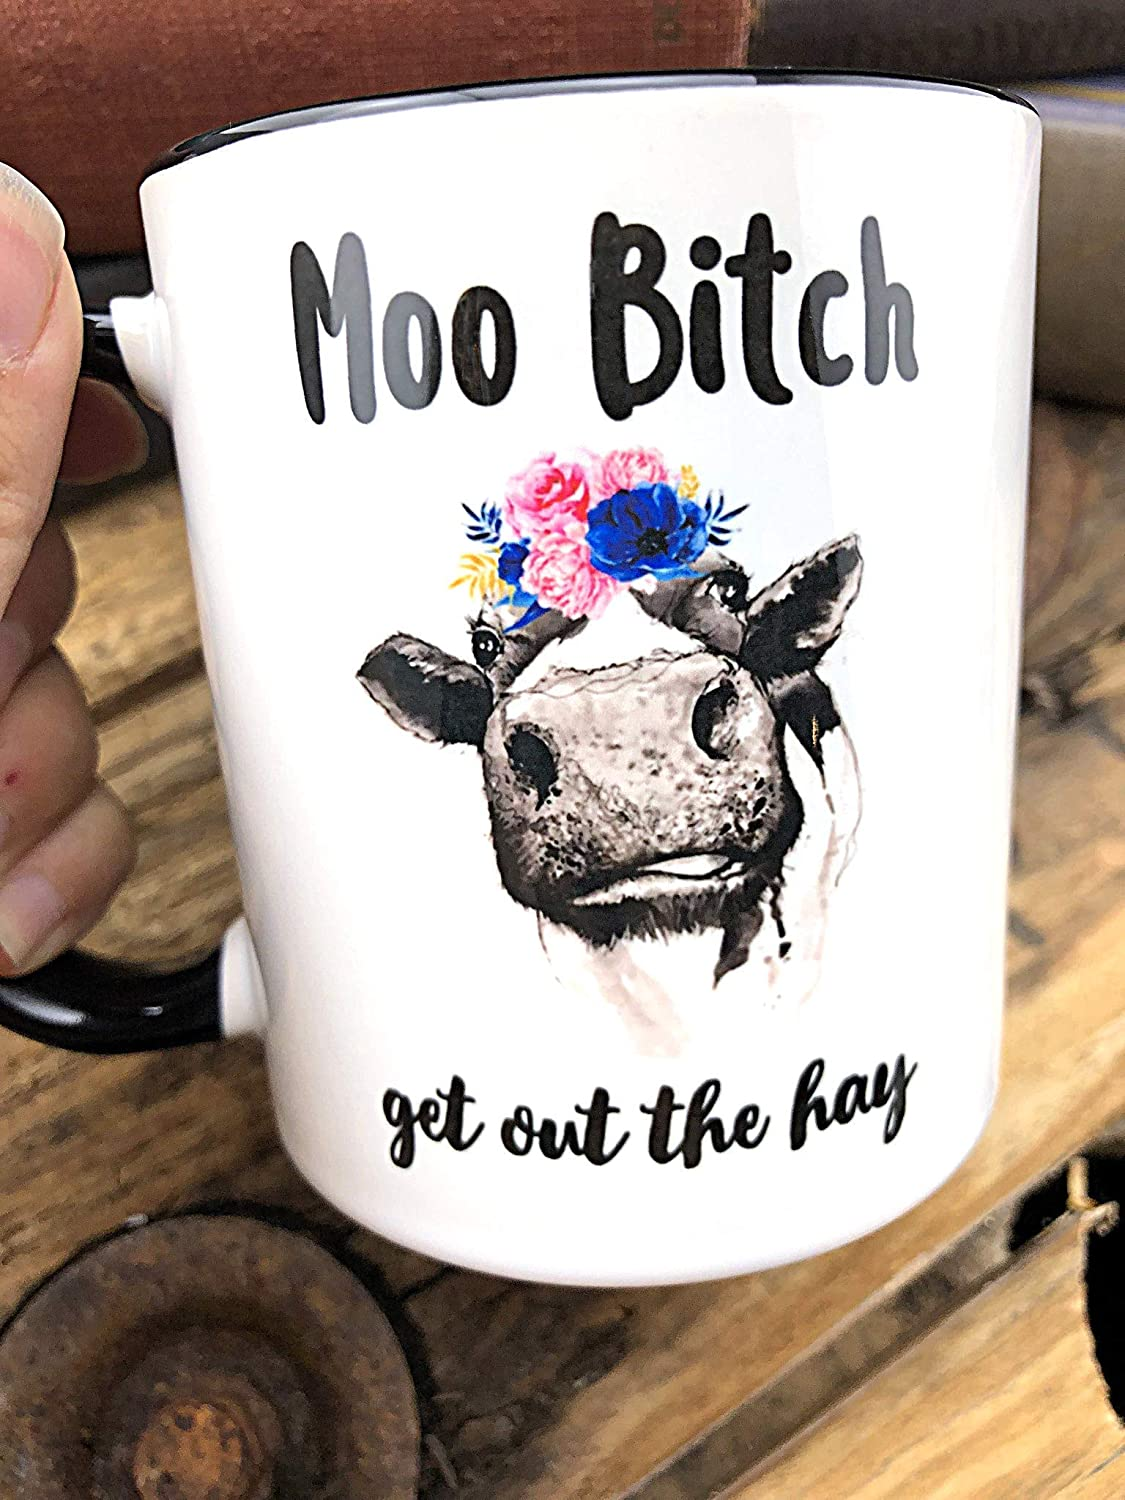 Ceramic Present for Music Lover Floral Crown Animal Novelty Item Gift for Friend 11 oz Moo Bitch Get Out the Hay Cow Mug